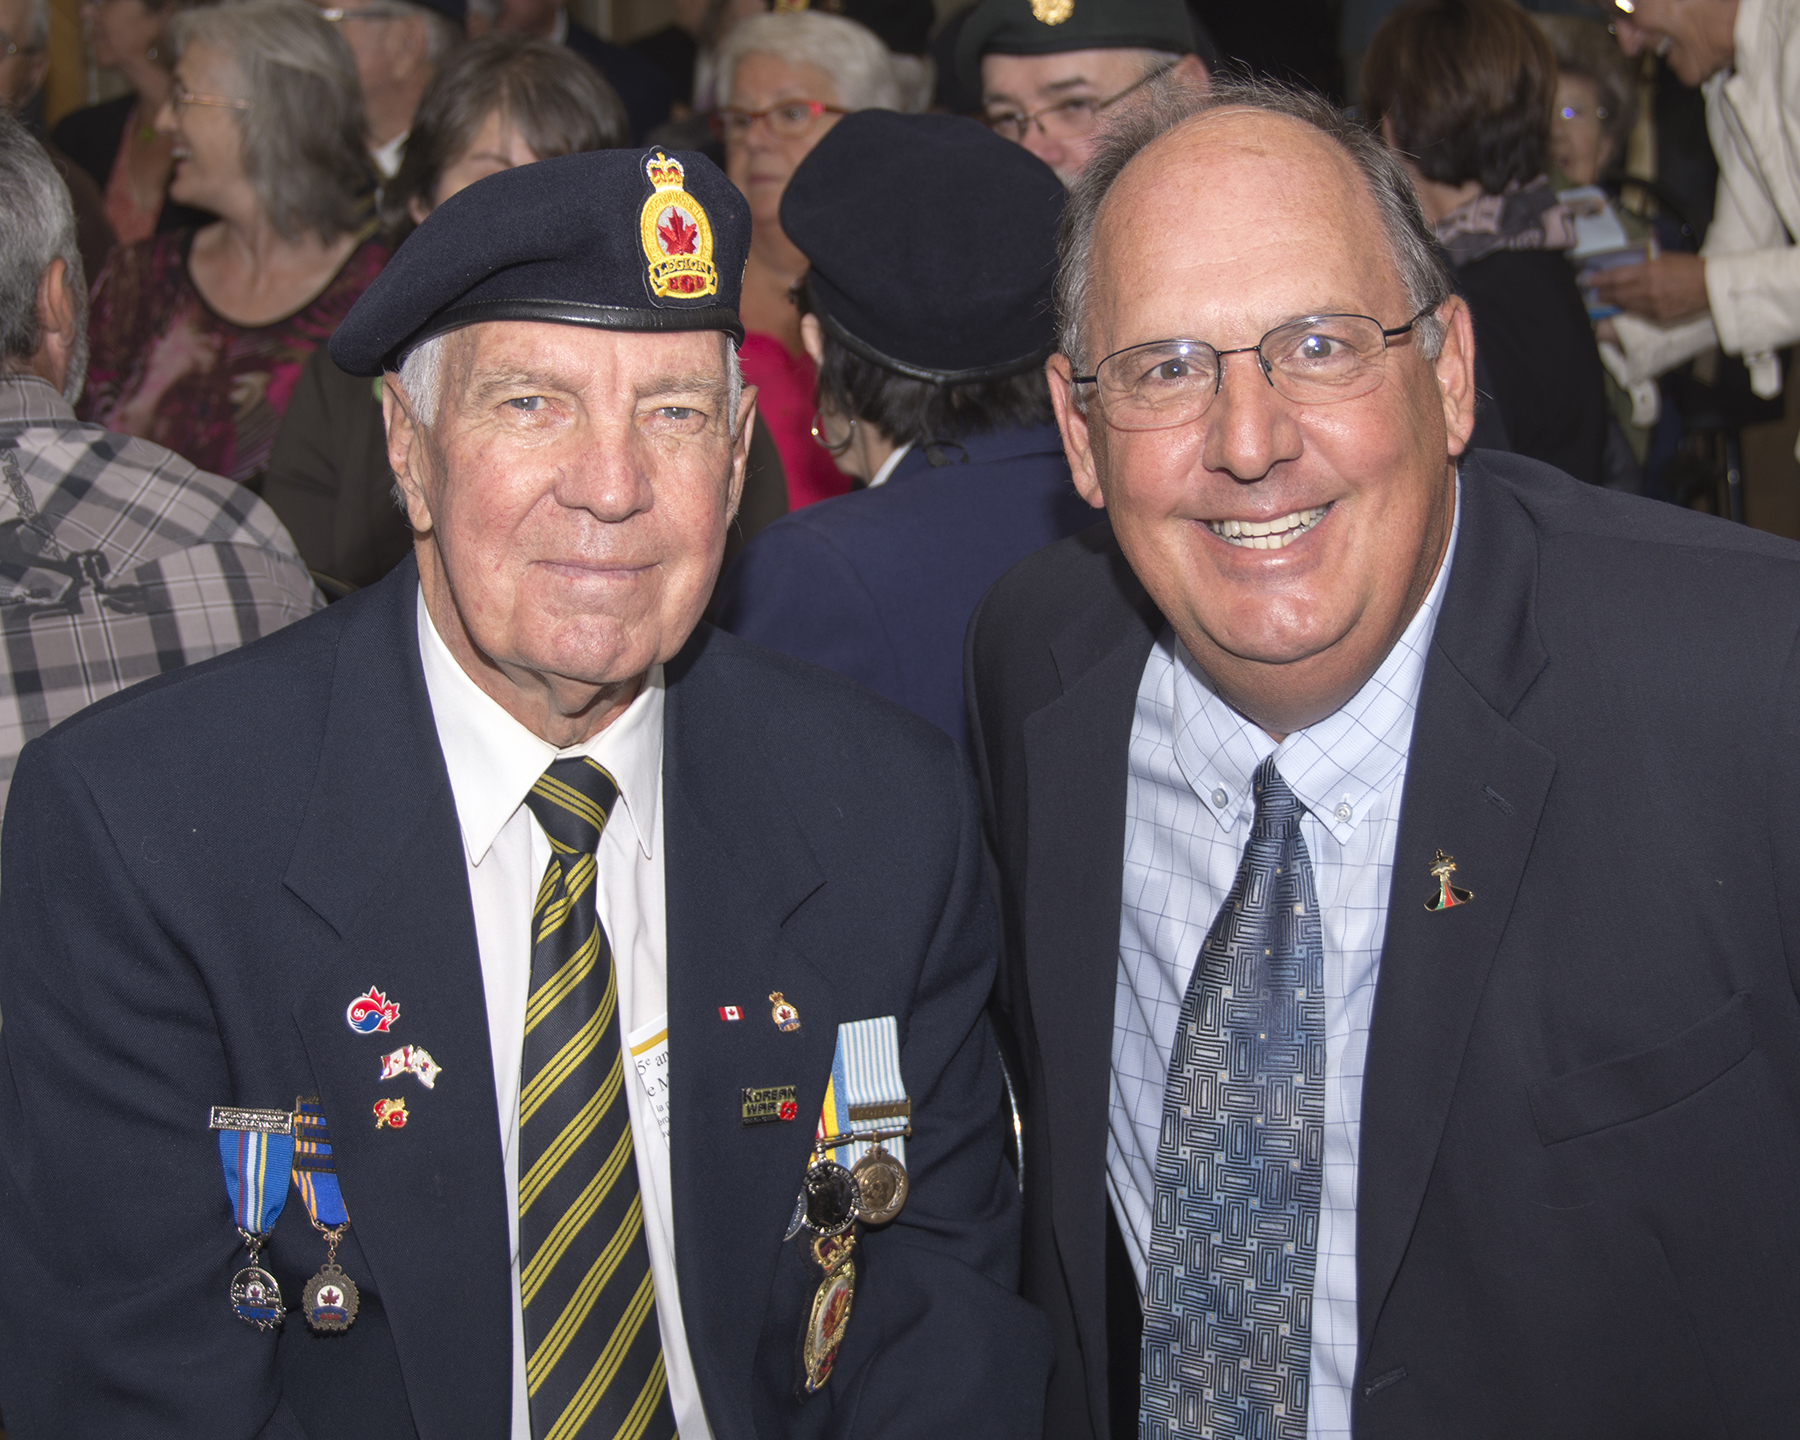 Martin Abud (right) joins Korean War Veteran William Pearce shortly before the ceremony marking the 75th anniversary of No. 9 Bombing and Gunnery School in Mont-Joli, Québec, on August 22, 2016. For Mr. Abud, a former aviation (engines) technician (1974-77) with 425 Tactical Fighter Squadron, the ceremony was the proud culmination of countless volunteer hours of planning and coordination. PHOTO: Jean-Pierre Bonin